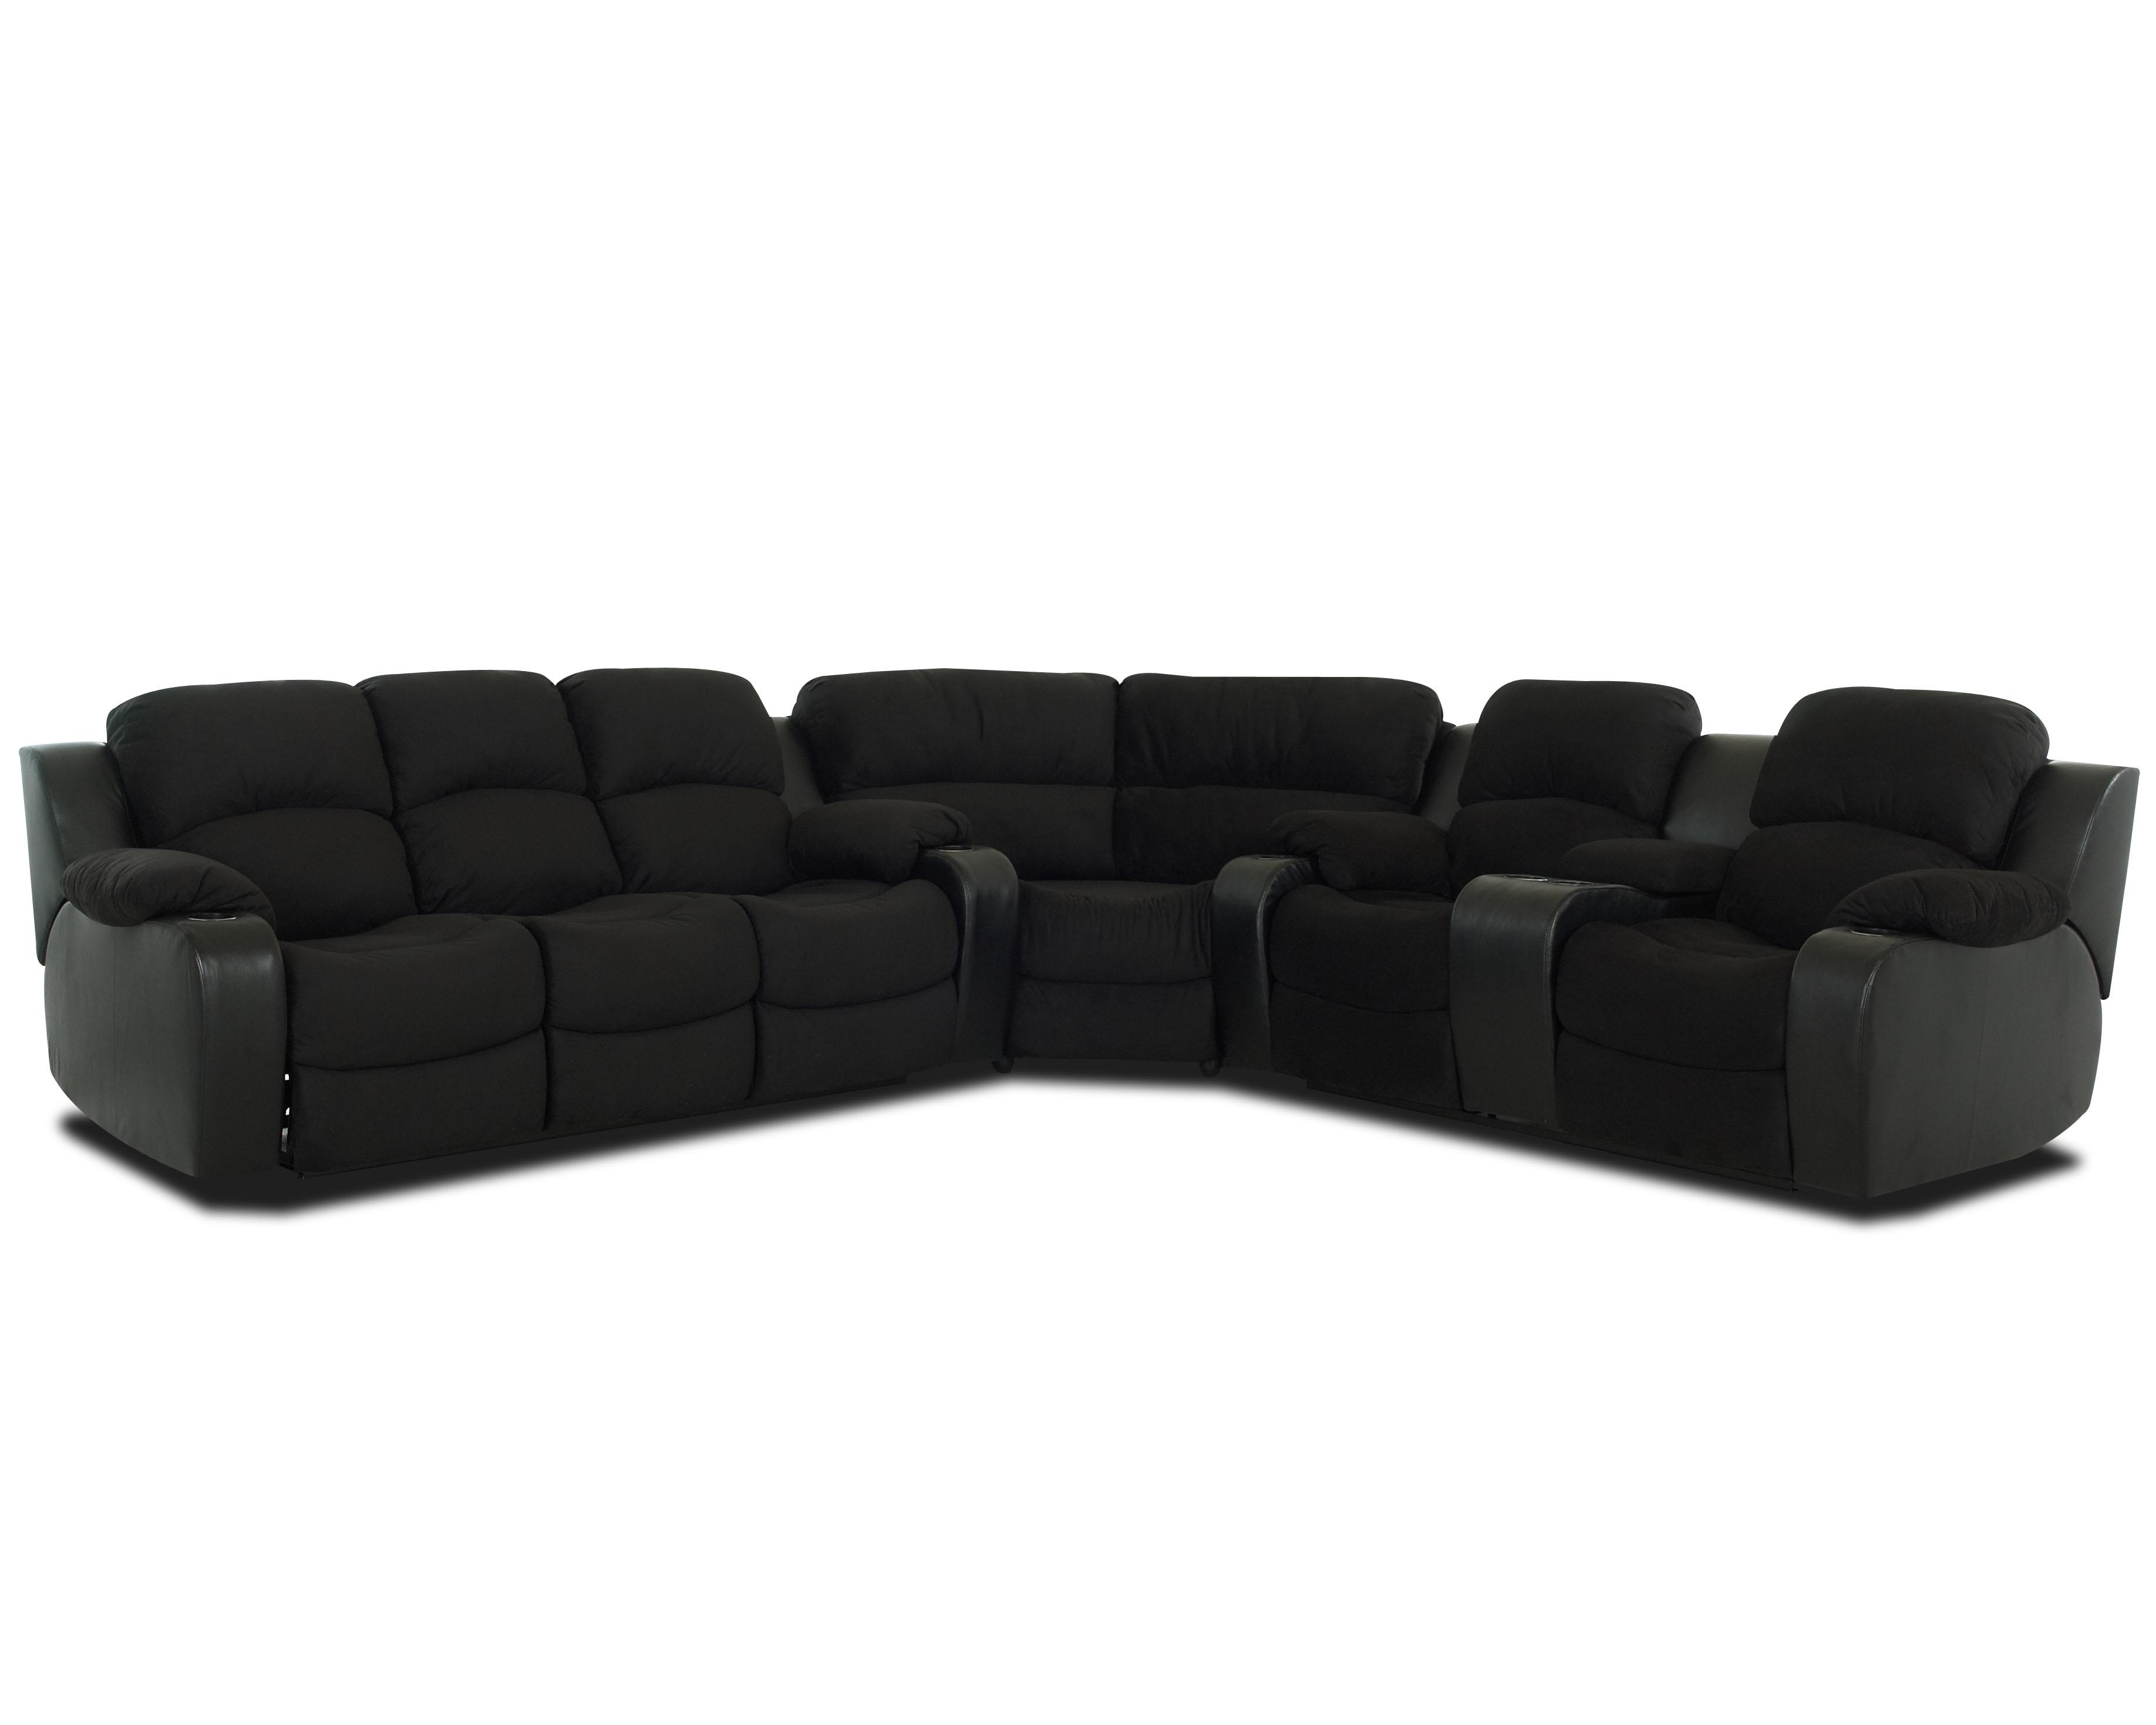 Klaussner Grand Reclining Sectional Sofa With Console – Ahfa Intended For Jedd Fabric Reclining Sectional Sofas (Image 5 of 10)